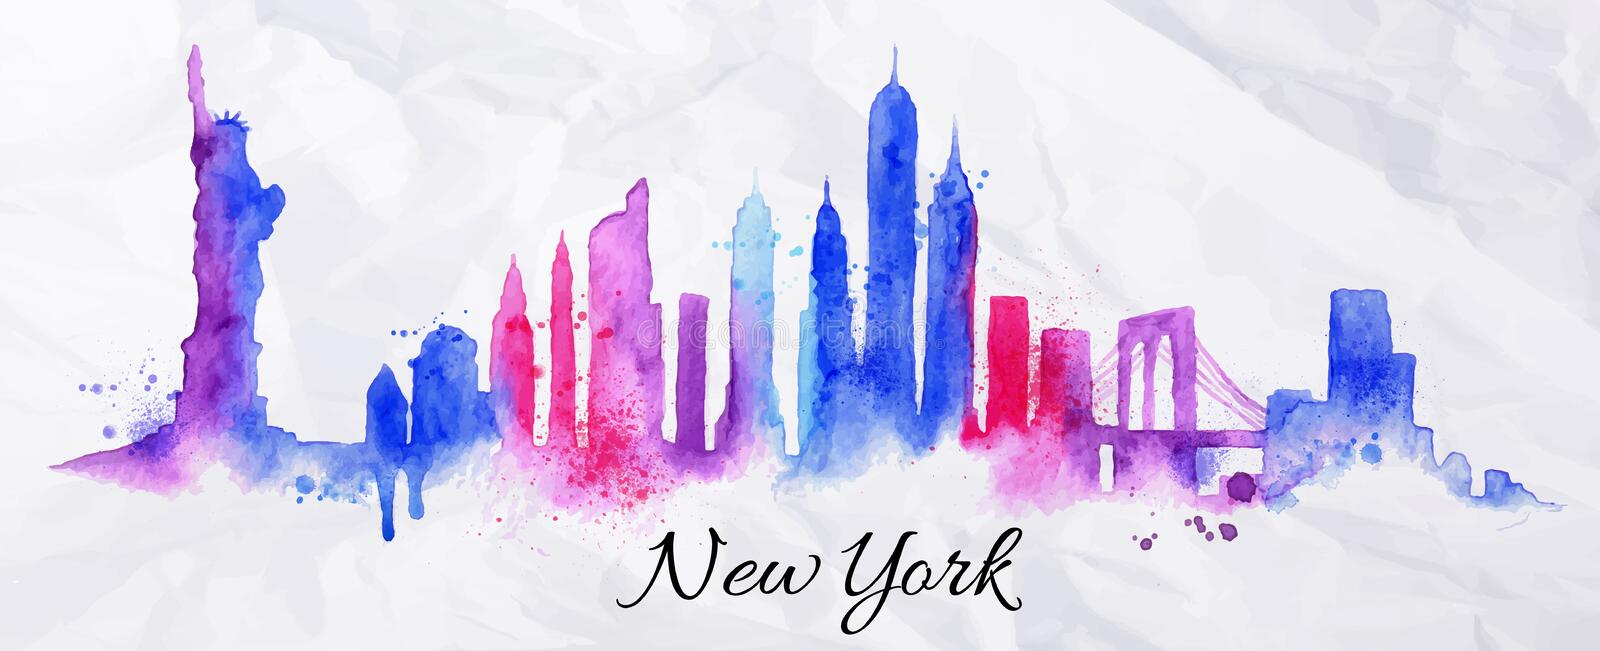 Aquarelle New York de silhouette illustration libre de droits